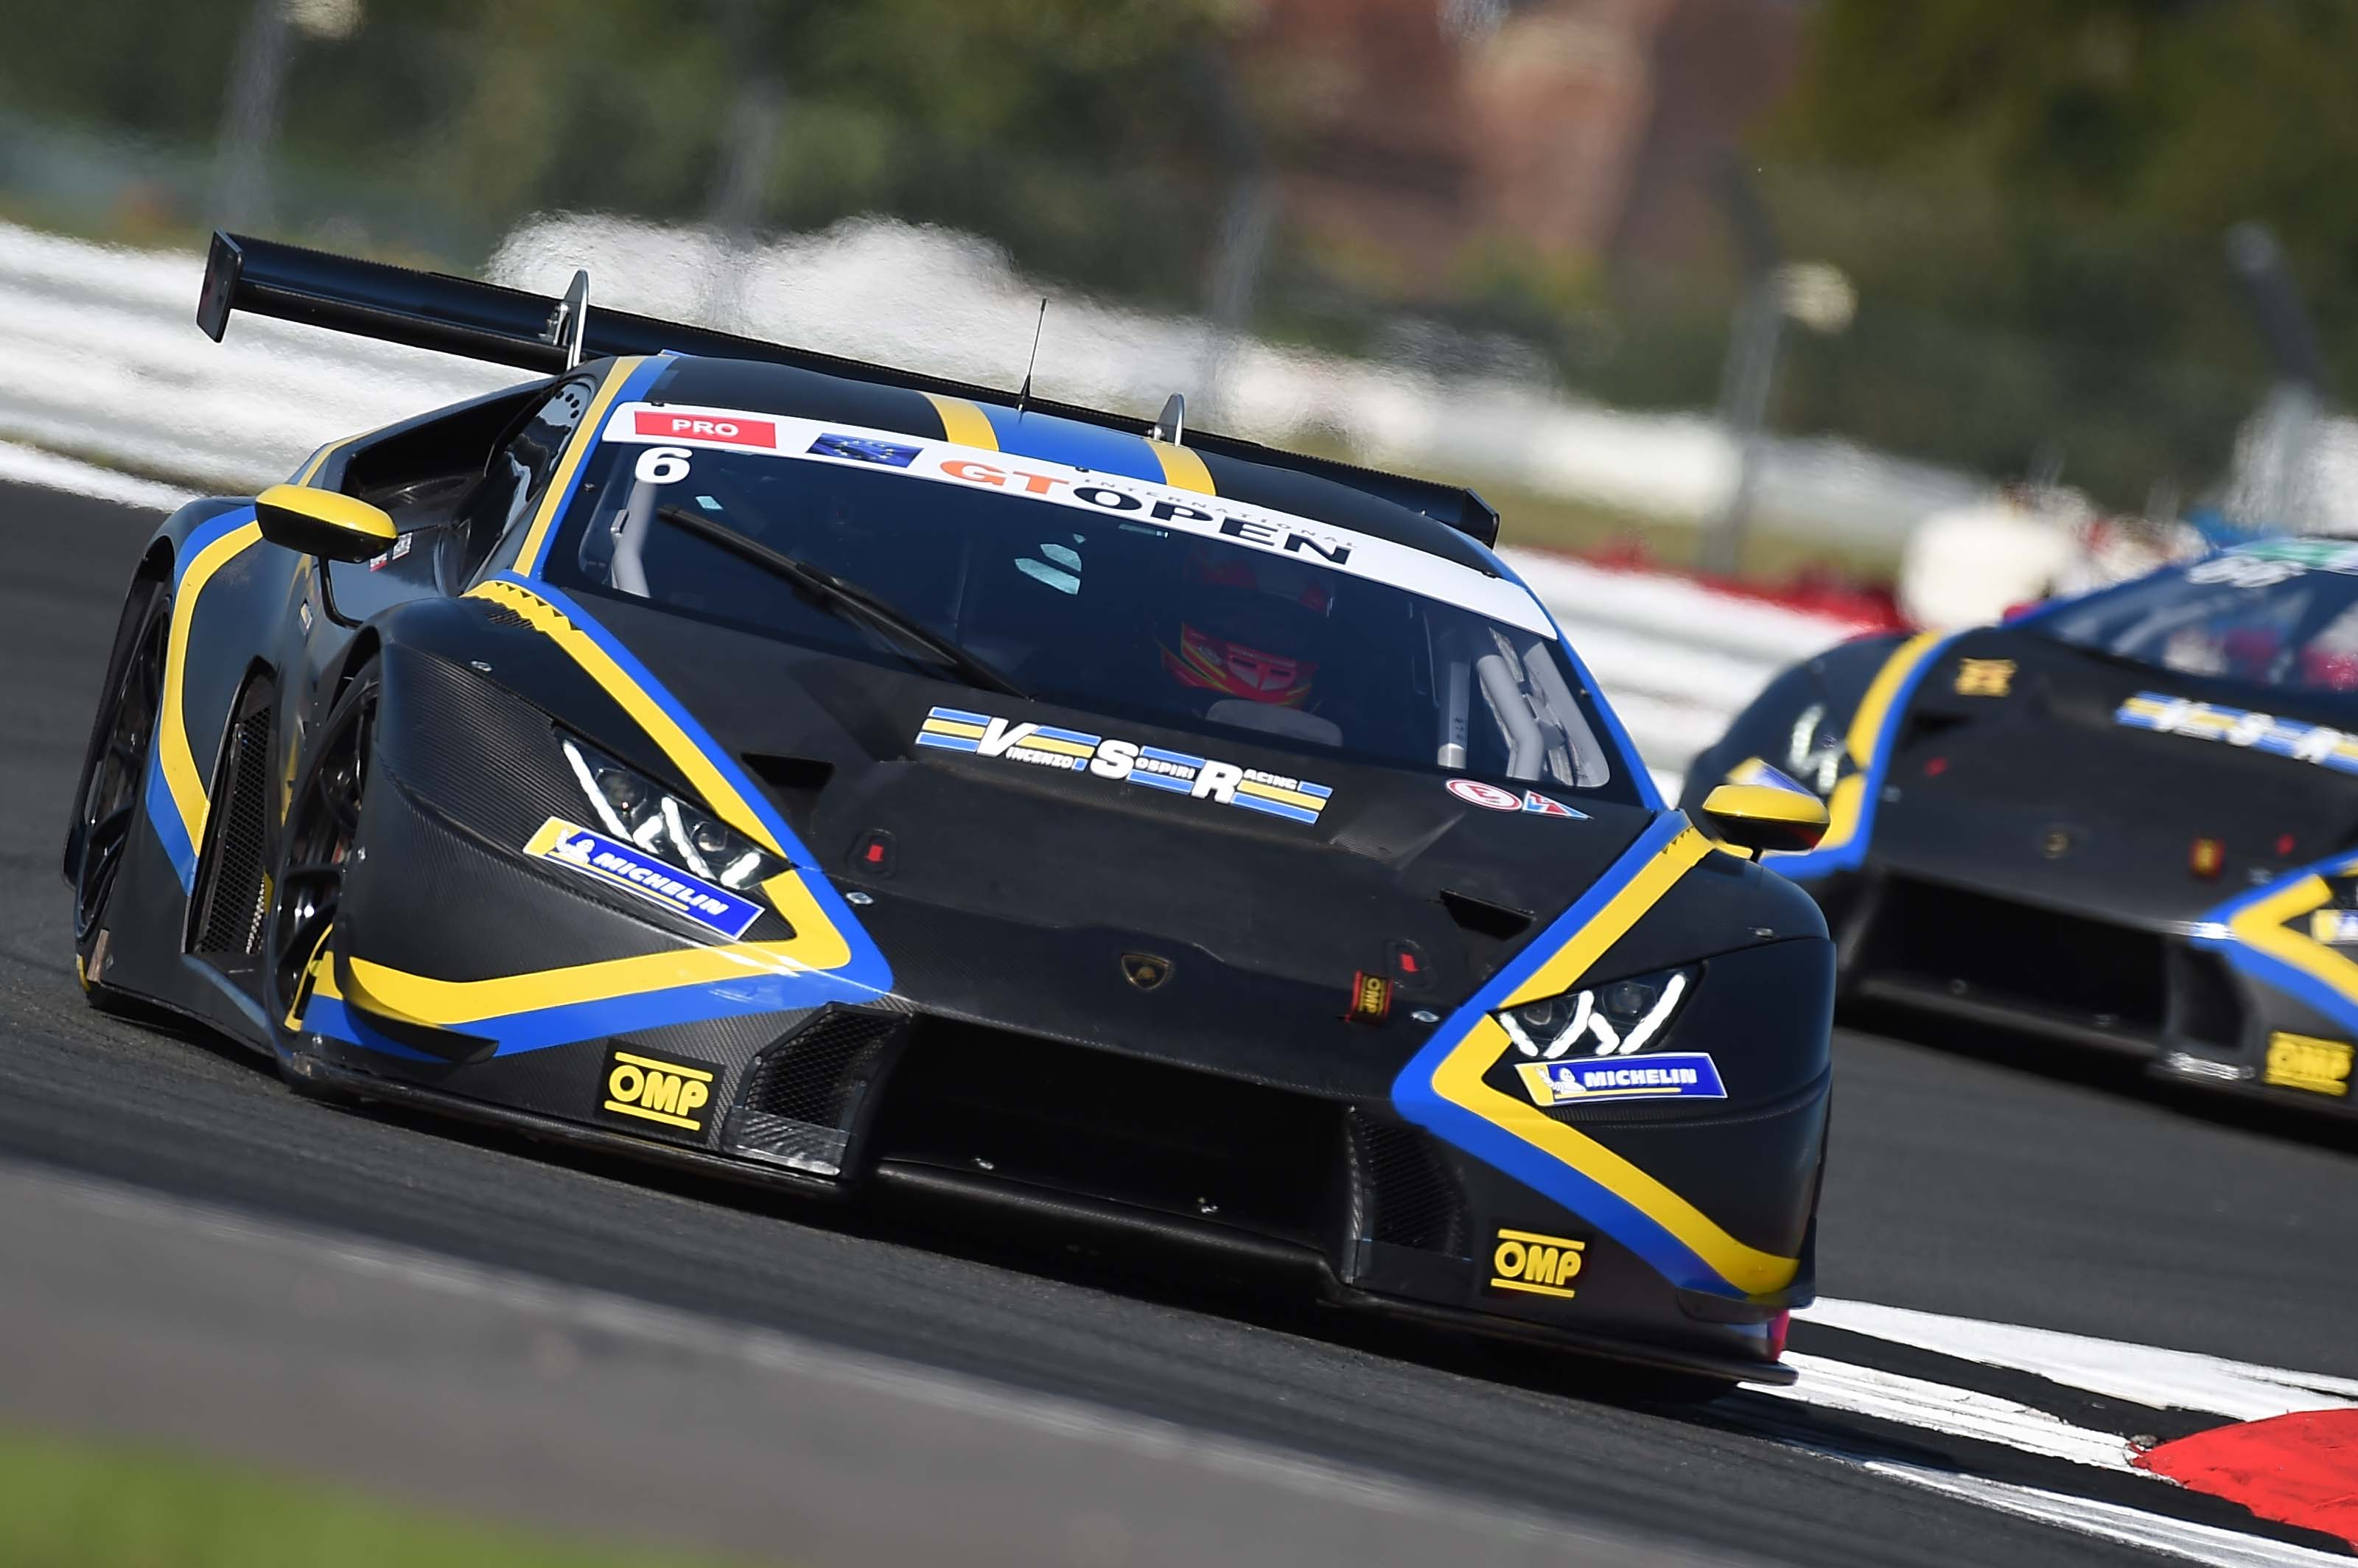 LING & SCHANDORFF TO RACE VSR LAMBO IN GT OPEN